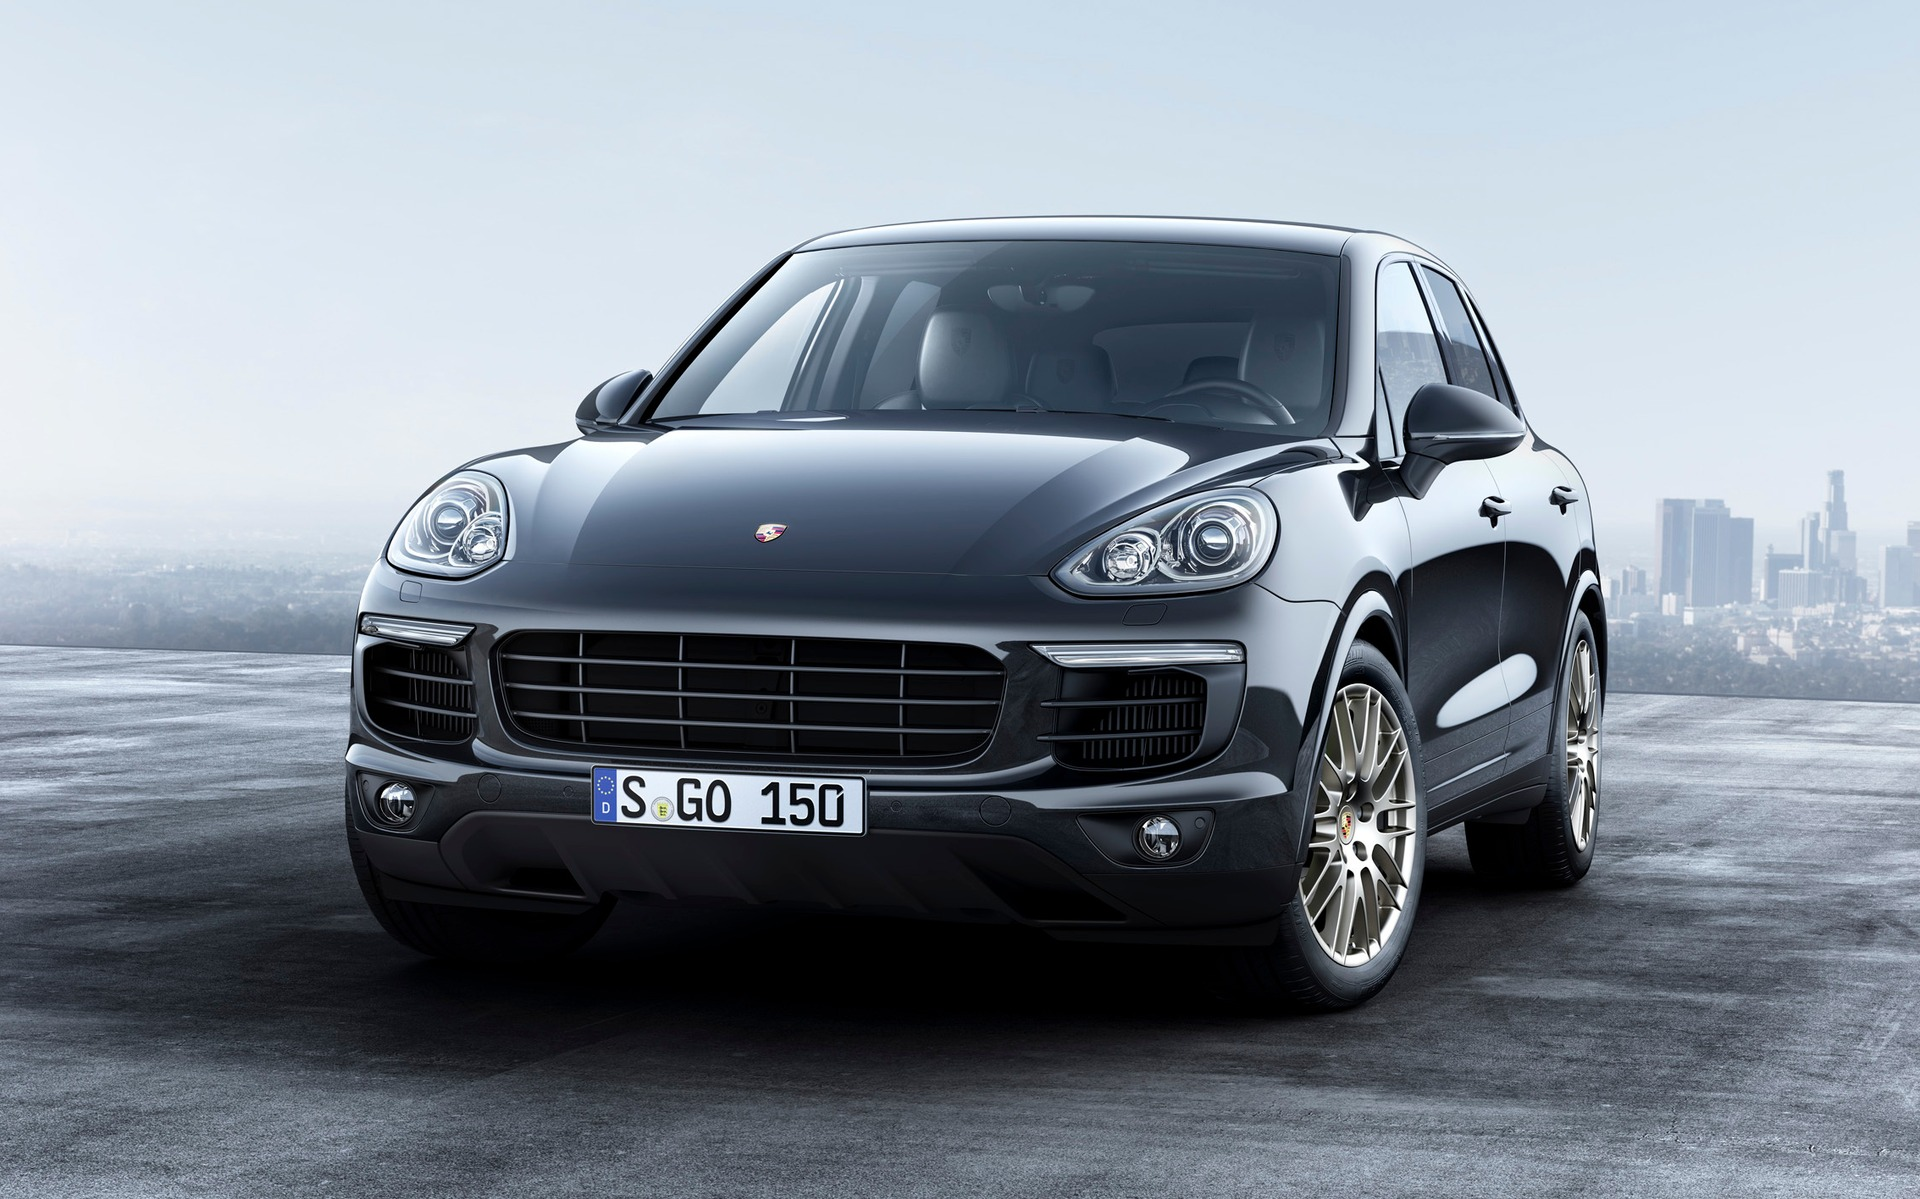 5 Luxury Cars to Keep an Eye On at IAA 2017 iaa 2017 5 Luxury Cars to Keep an Eye On at IAA 2017 5 Luxury Cars to Keep an Eye On at IAA 2017 Porsche Cayenne 2